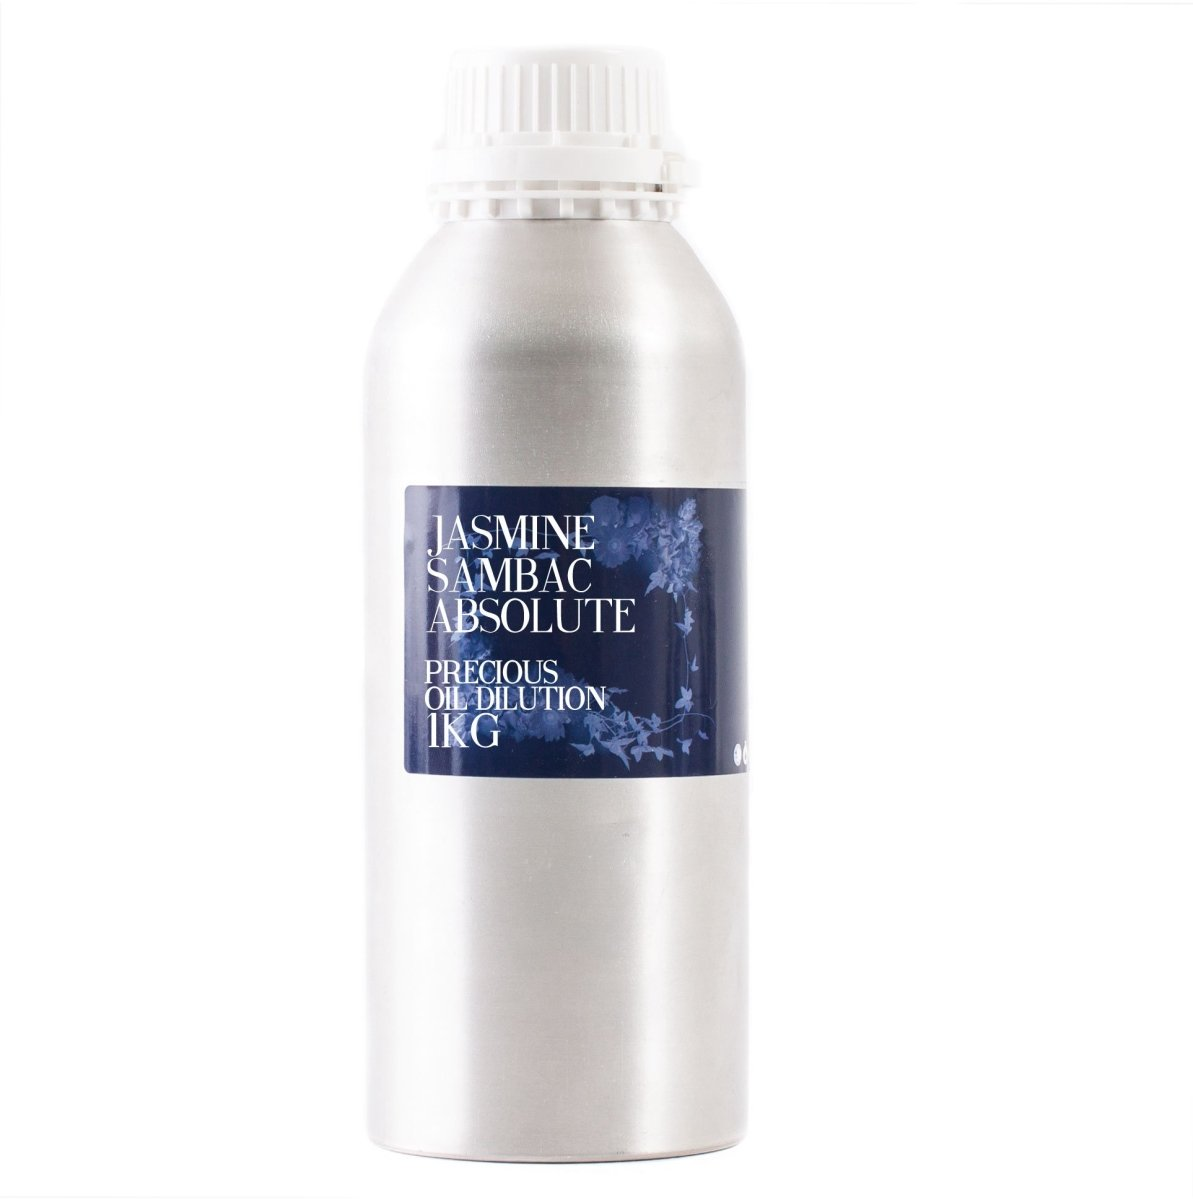 Jasmine Sambac - Absolute Oil - Mystic Moments UK